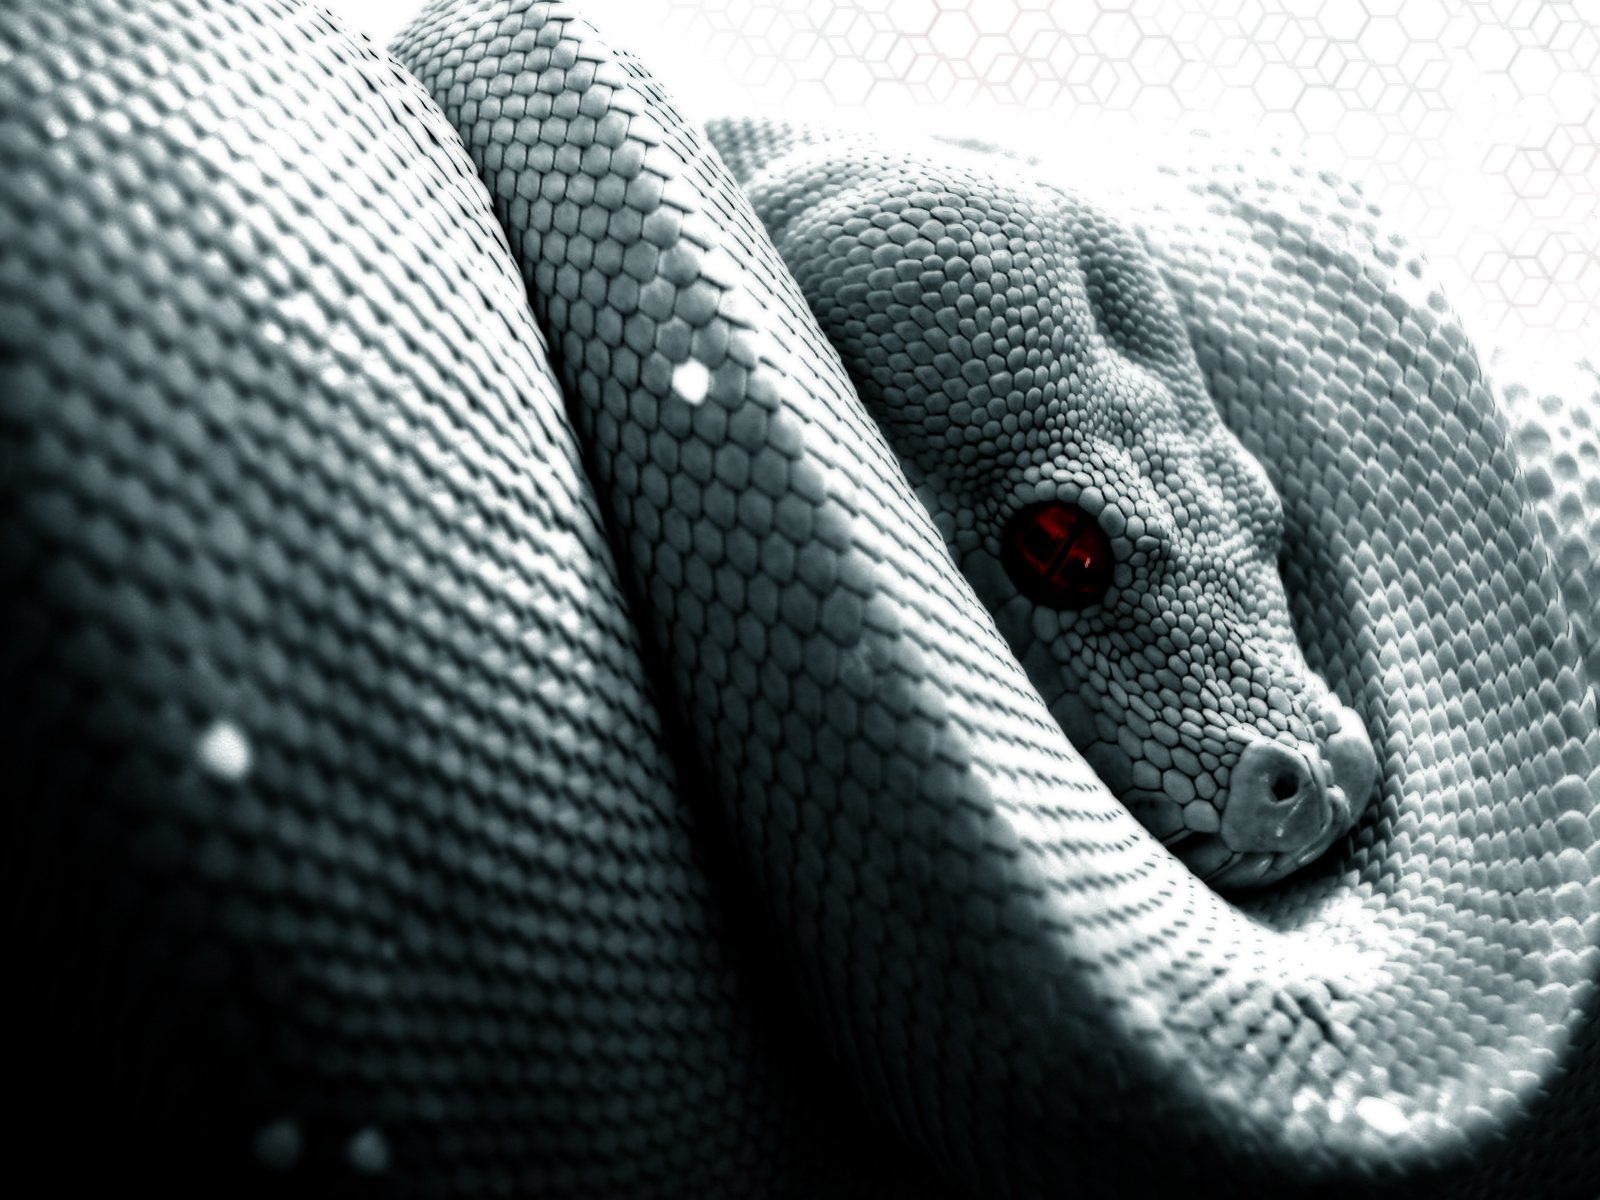 269 reptile hd wallpapers | background images - wallpaper abyss